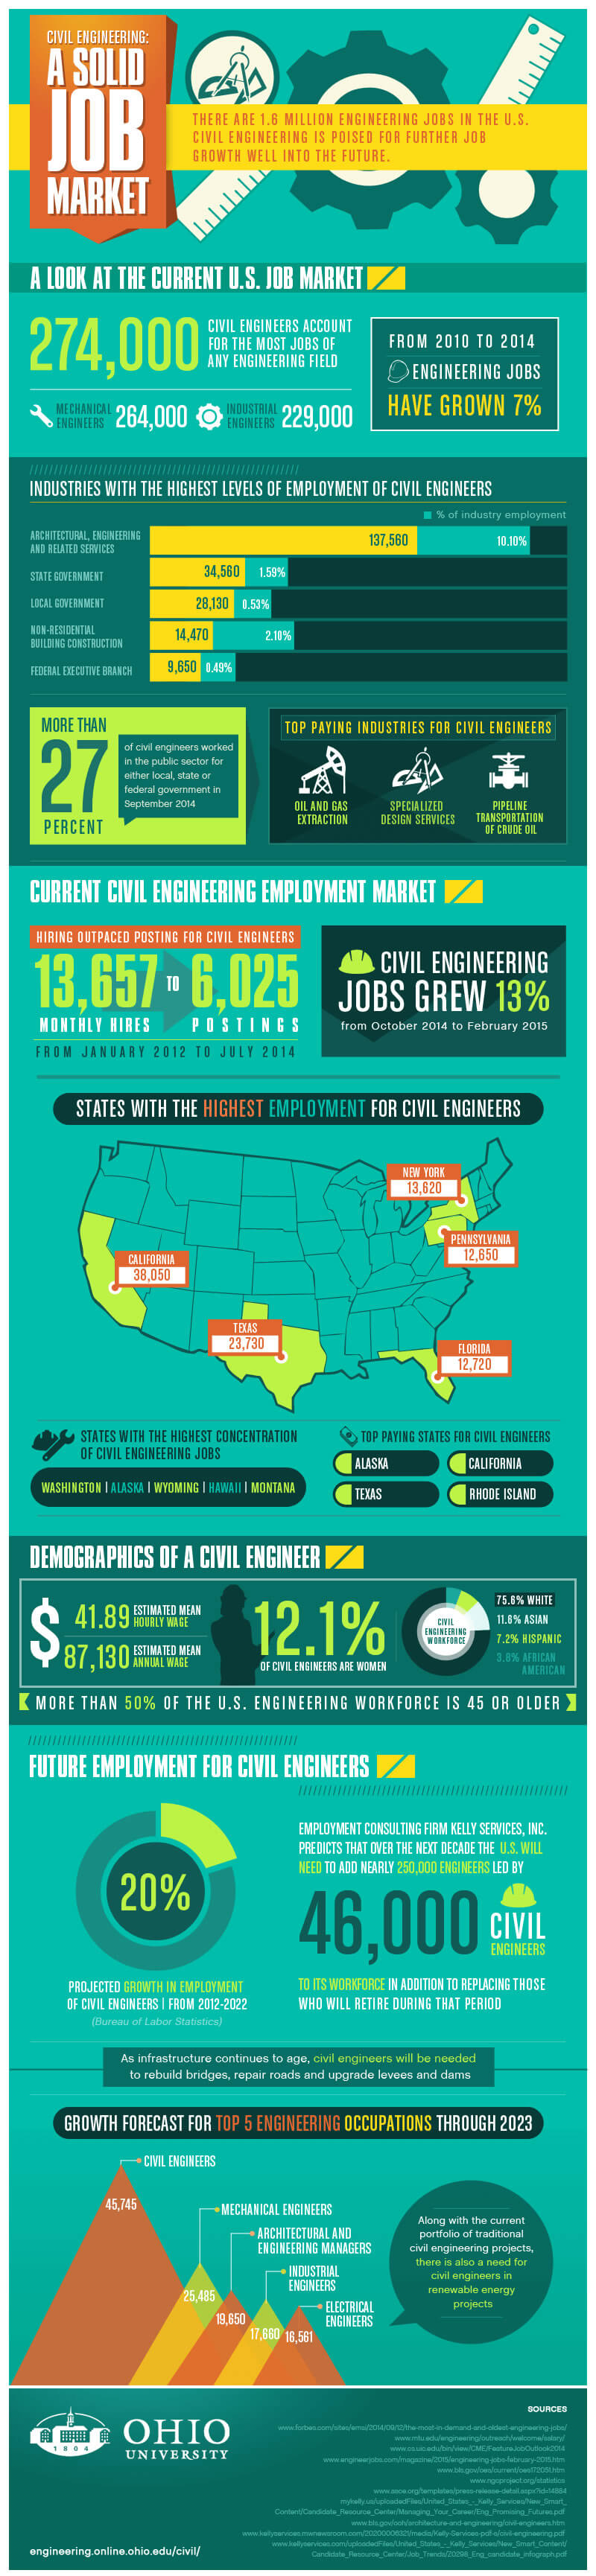 Civil Engineering: A Solid Job Market infographic